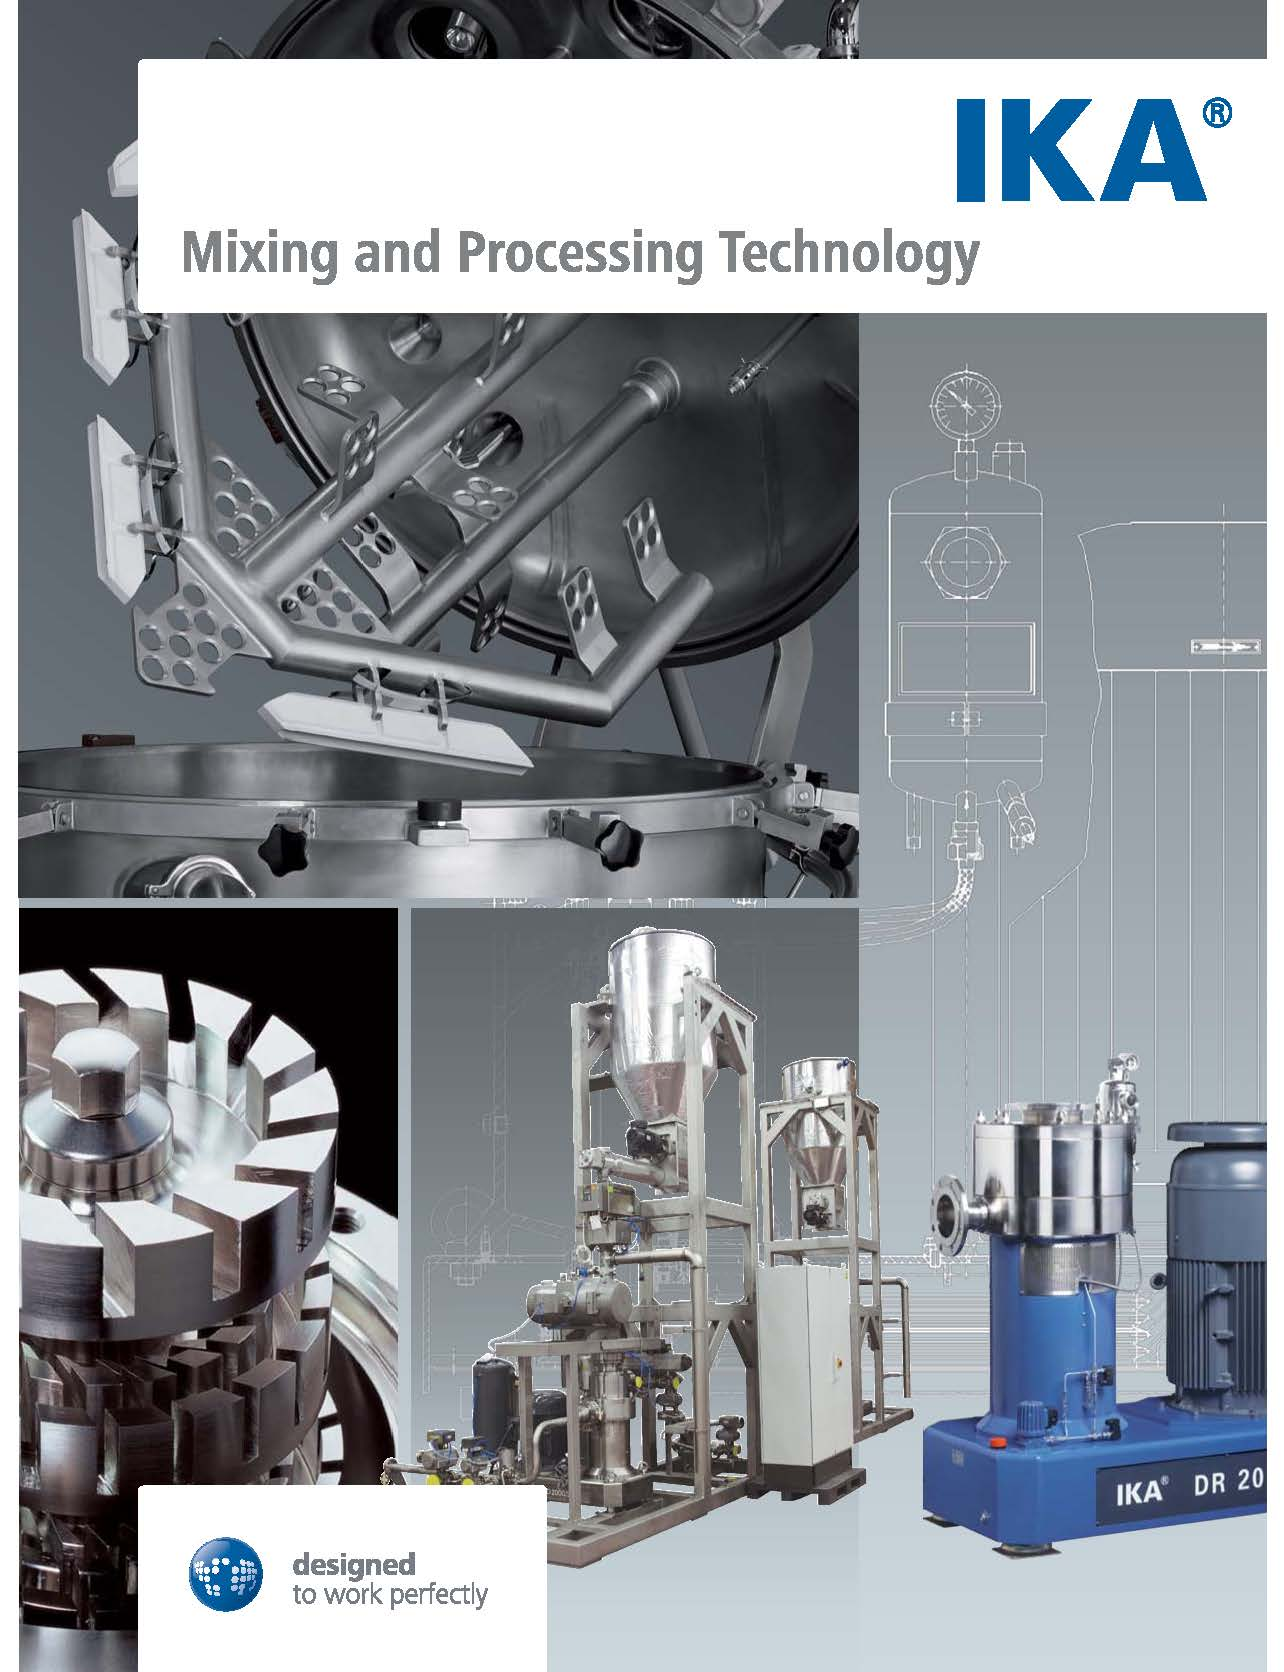 IKA Mixing and Process Technology Image